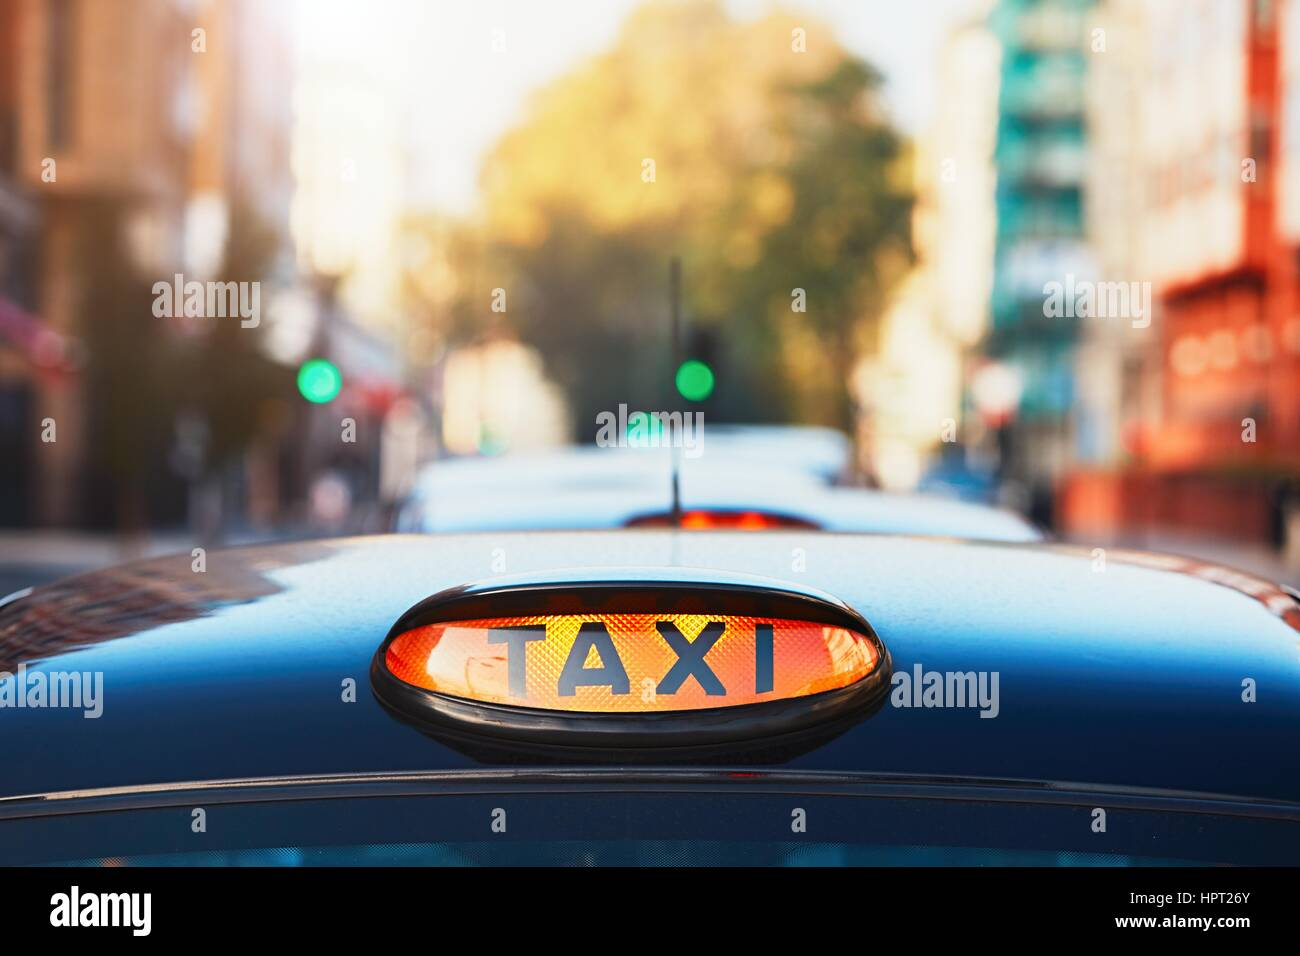 London black taxi cab sign on the street, UK - Stock Image